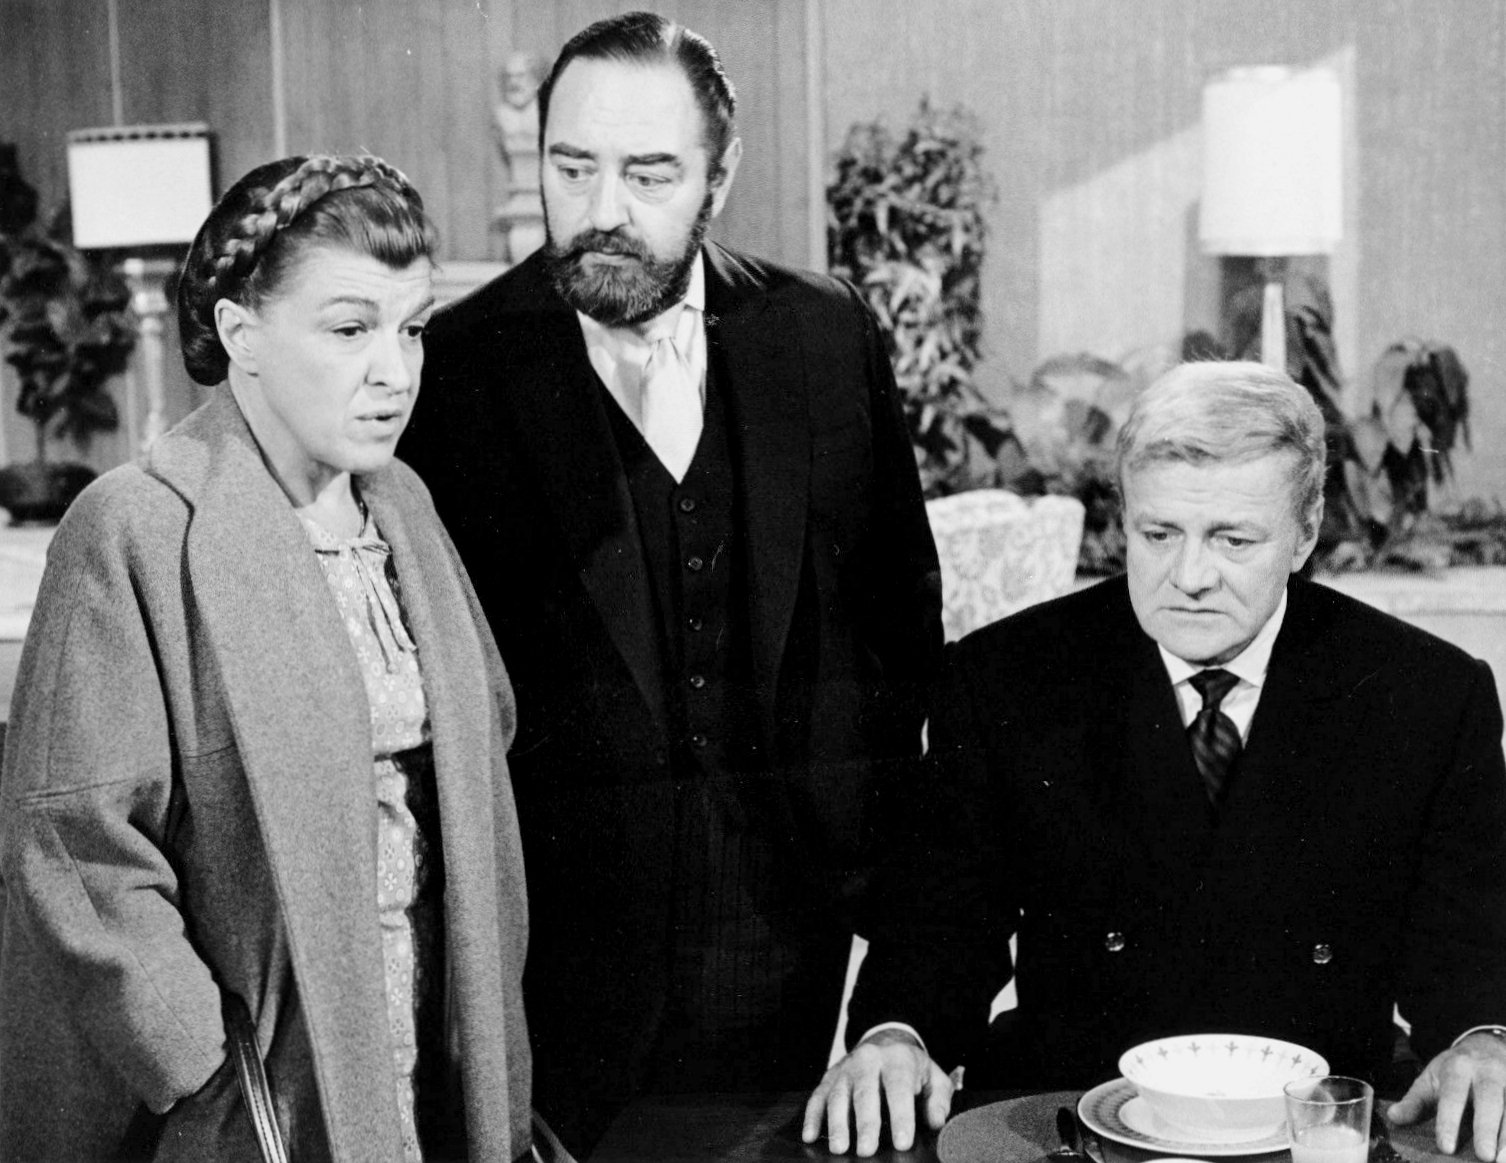 Actors Sebastian Cabot, Brian Keith and actress Nancy Walker in a 1970 promotional photograph for the CBS Television series Family Affair. | Source: Wikimedia Commons.